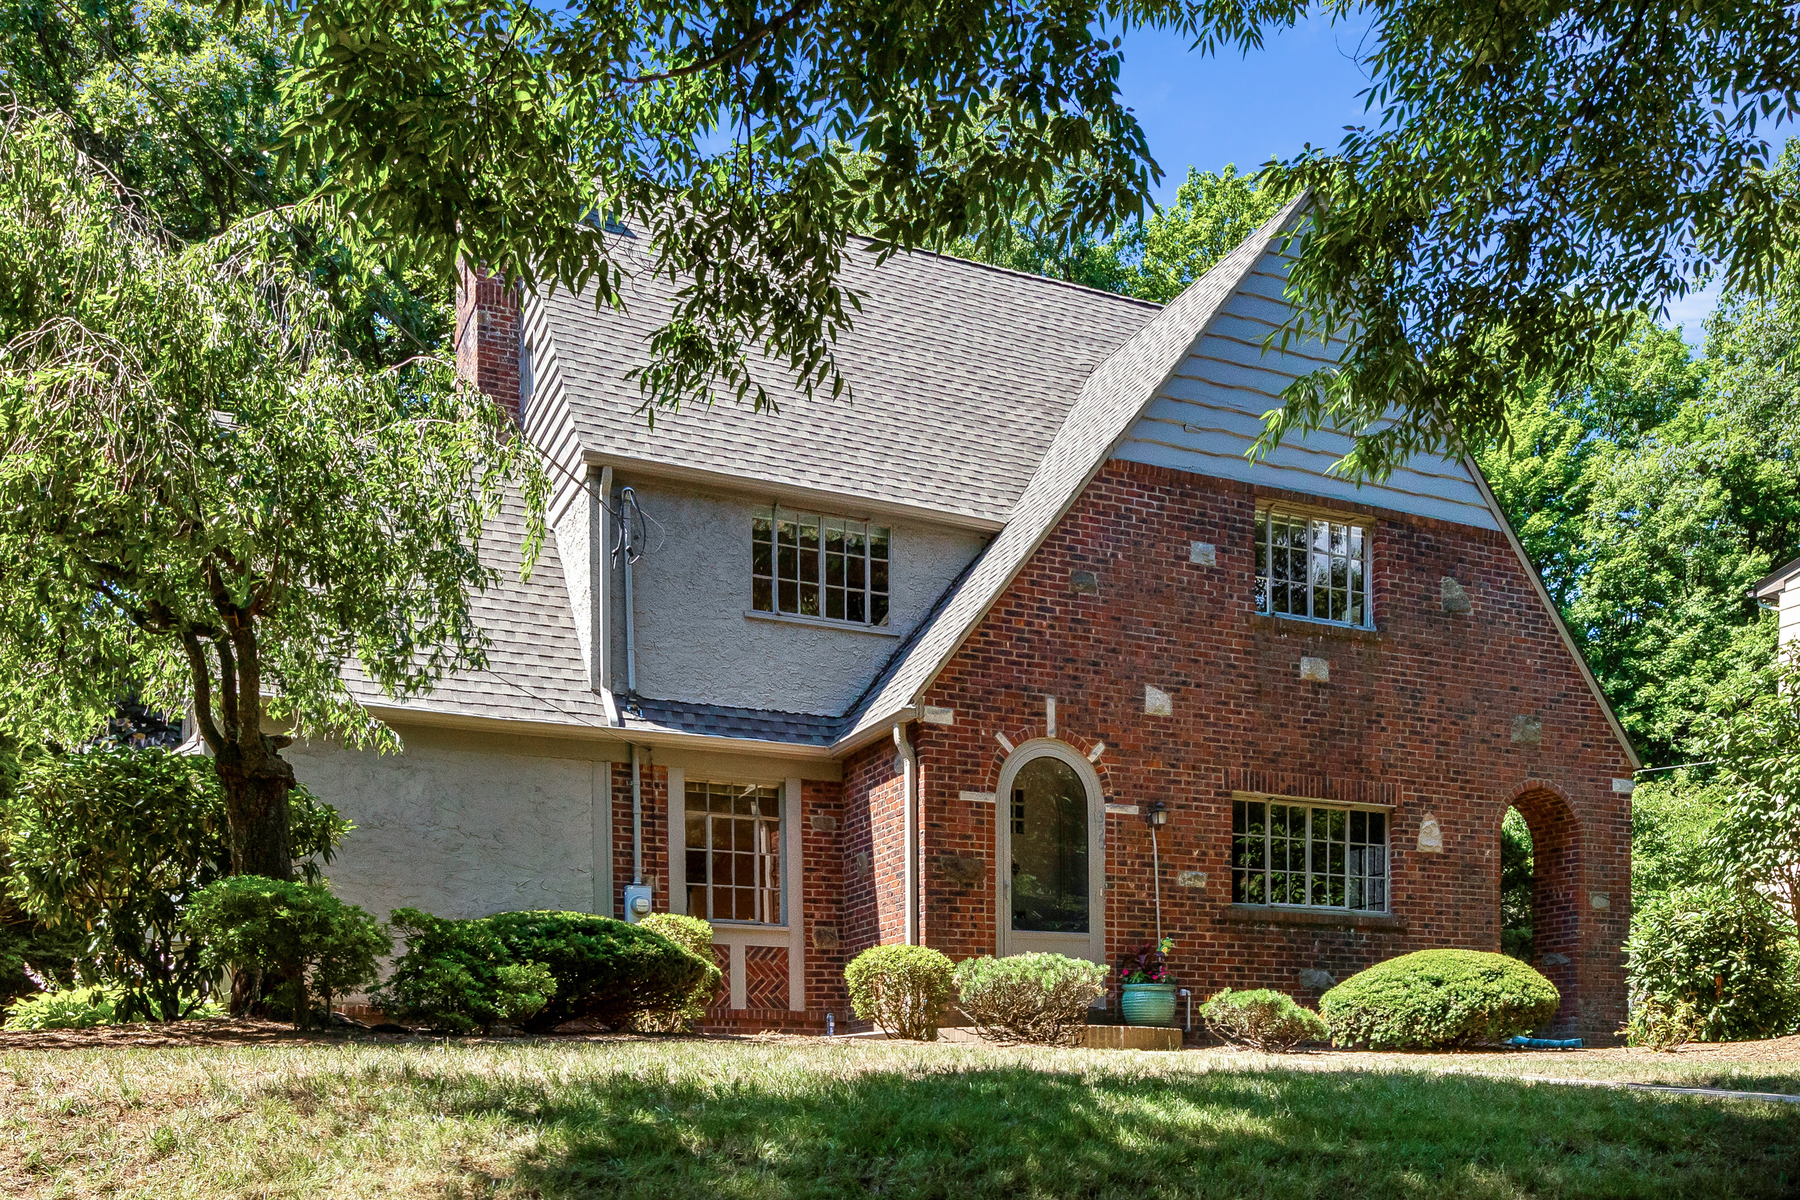 Single Family Homes for Active at 350 Fairmount Rd Ridgewood, New Jersey 07450 United States